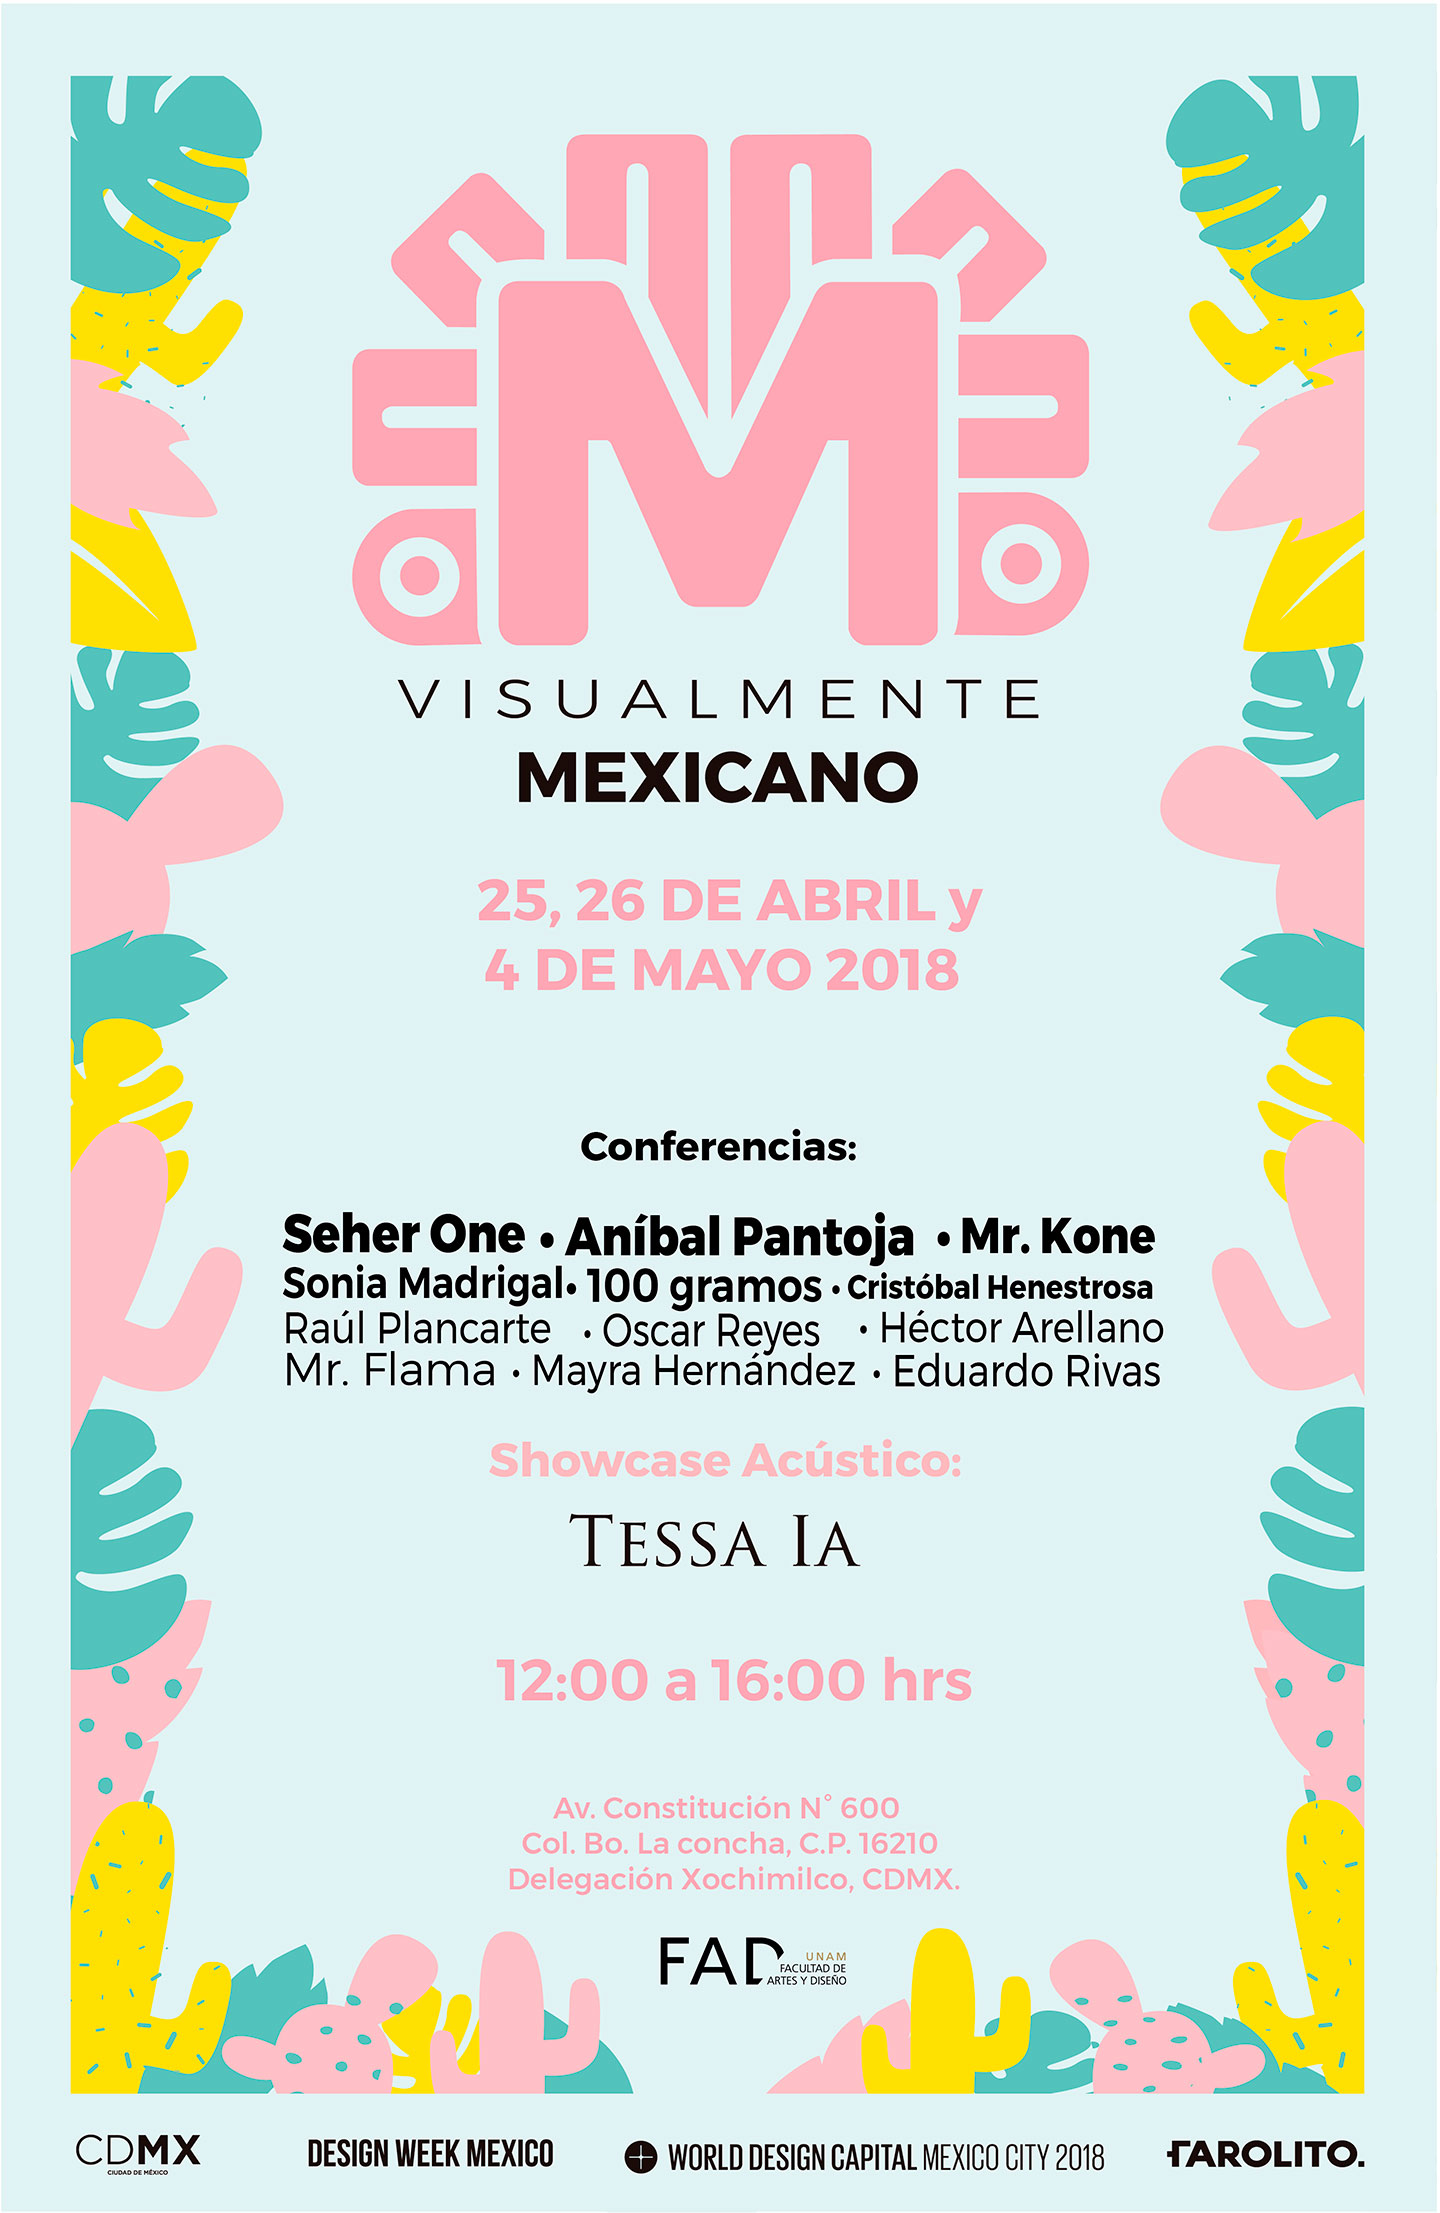 Cartel de visualmente mexicano 2018